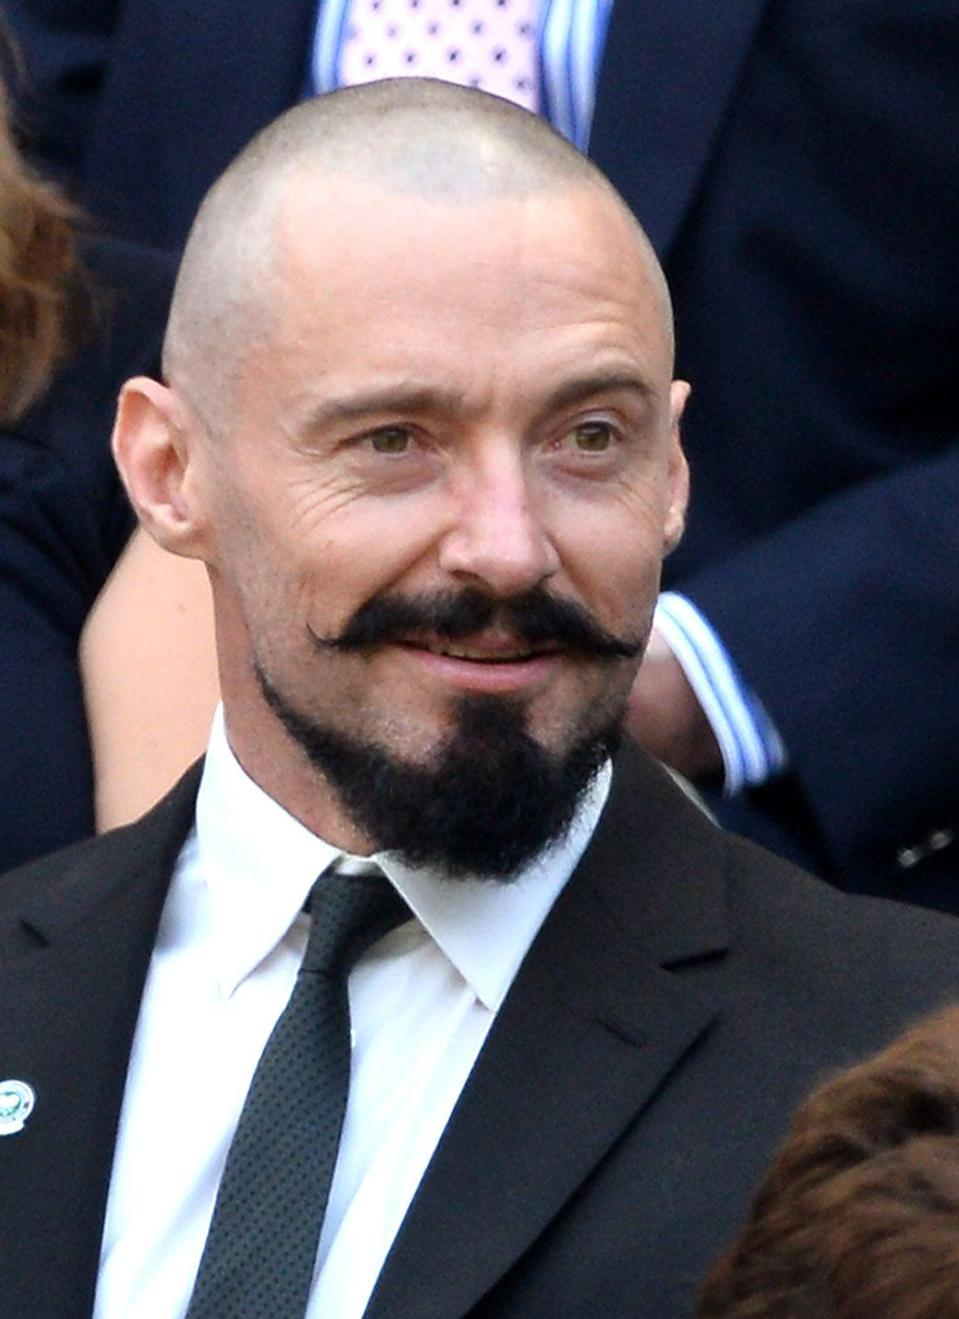 <p><strong>As seen on Hugh Jackman</strong></p><p>Is this style for everyone? Definitely not. It's aggressive in the way that it's old school and unexpected, but that's also part of it's charm. A style like this should not be taken lightly. You'll definitely get attention for it (for the right guy, that's a plus), but more than that, it takes elbow grease. The handlebar moustache alone takes trimming, shaping, and lots of product to keep it in place. The pointed goatee compounds that. But if you're going to experiment with facial hair, go big or go home, right?</p>